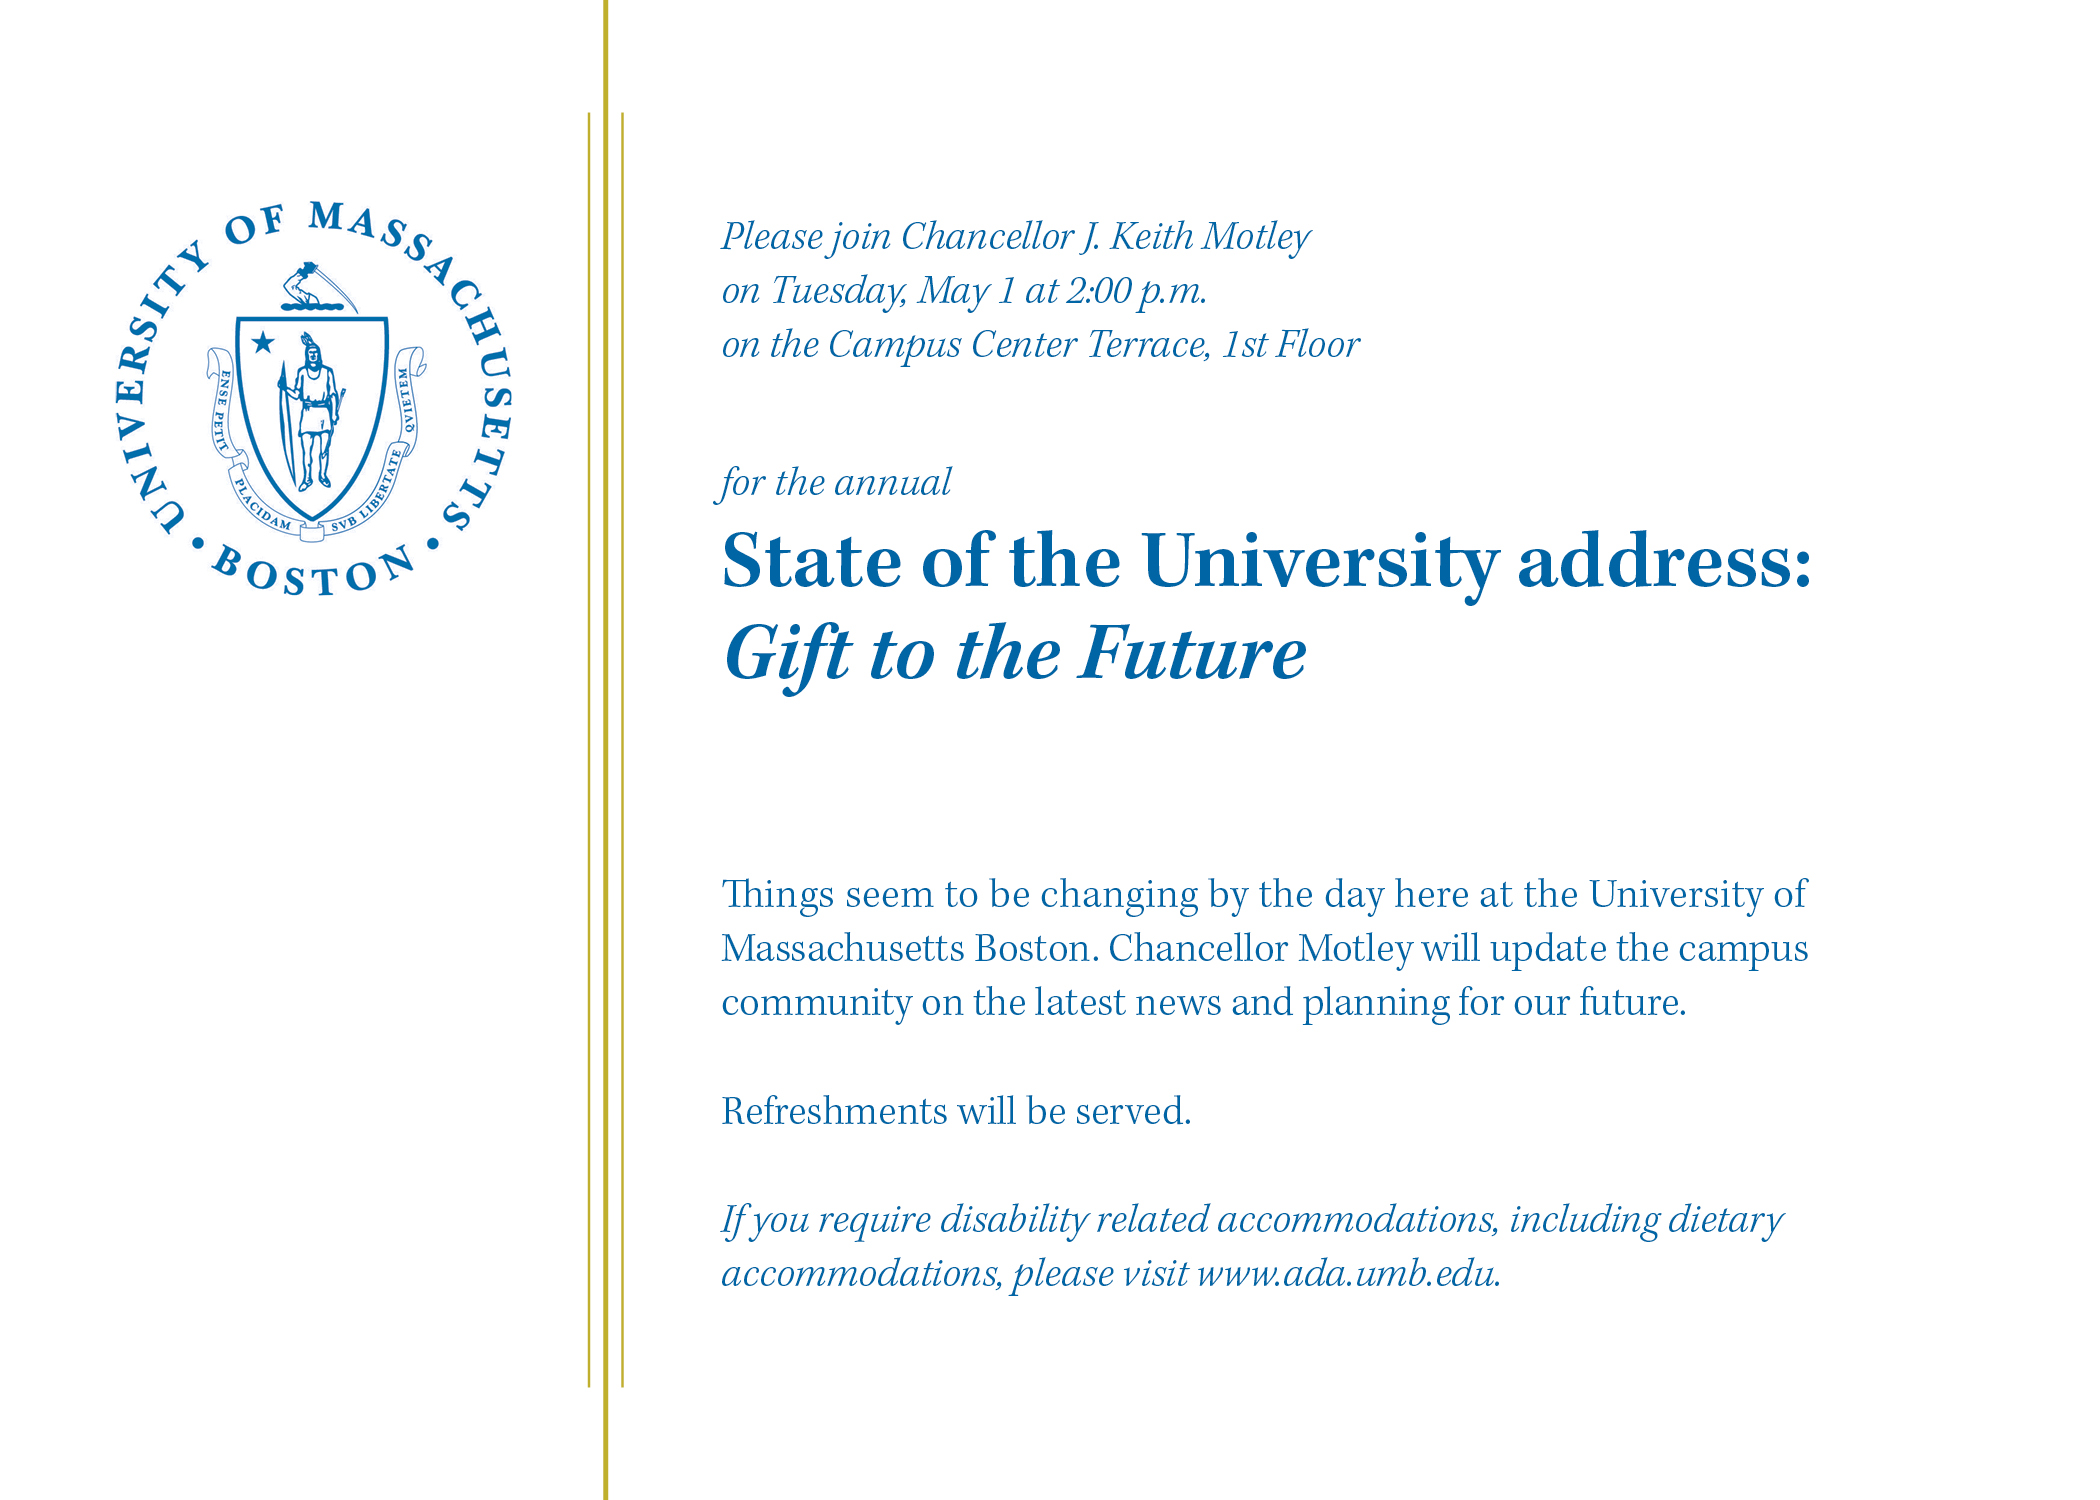 State of the University Post Card Invitation